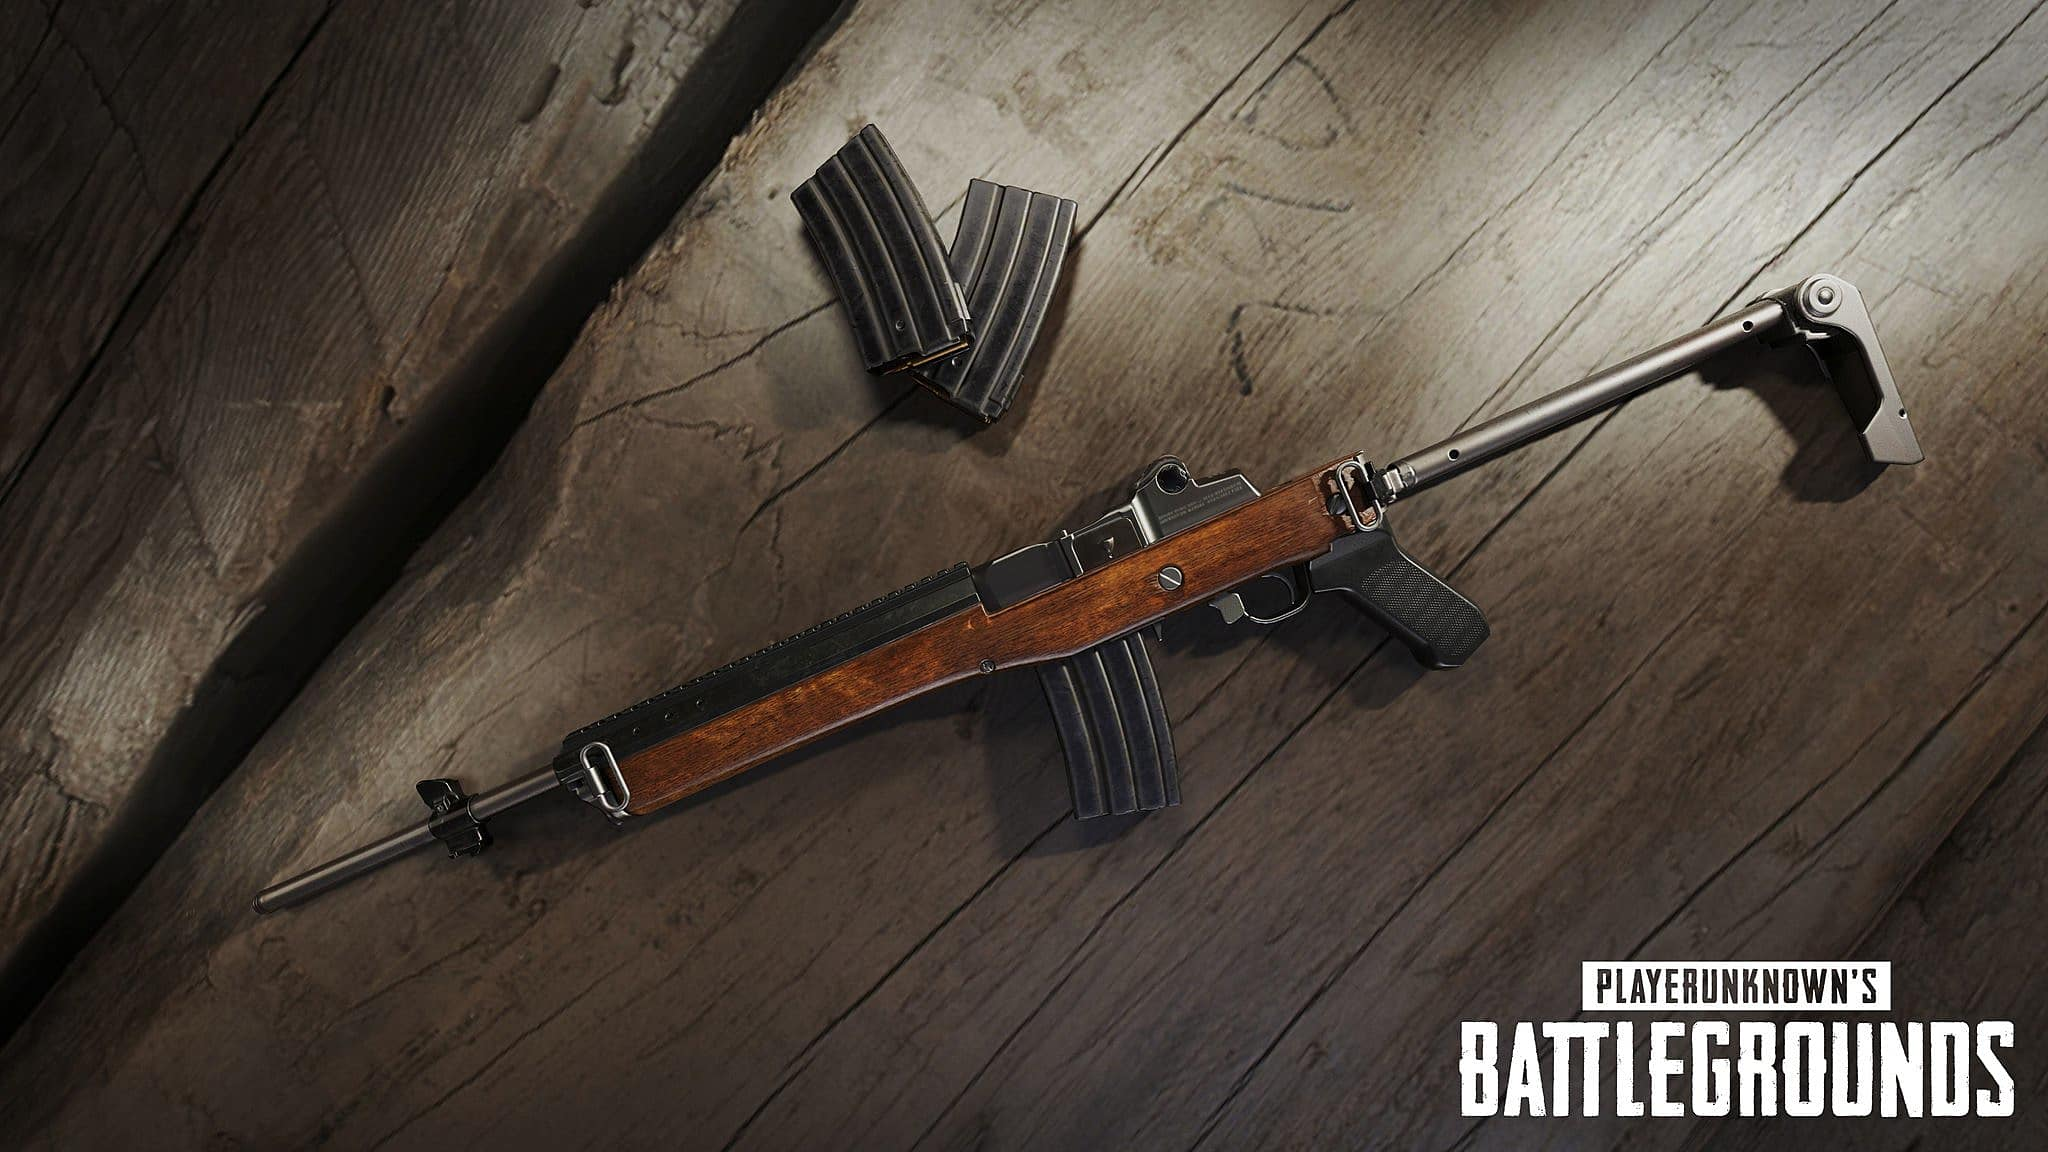 PUBG Guide: How to Get the Mini 14 Sniper Rifle